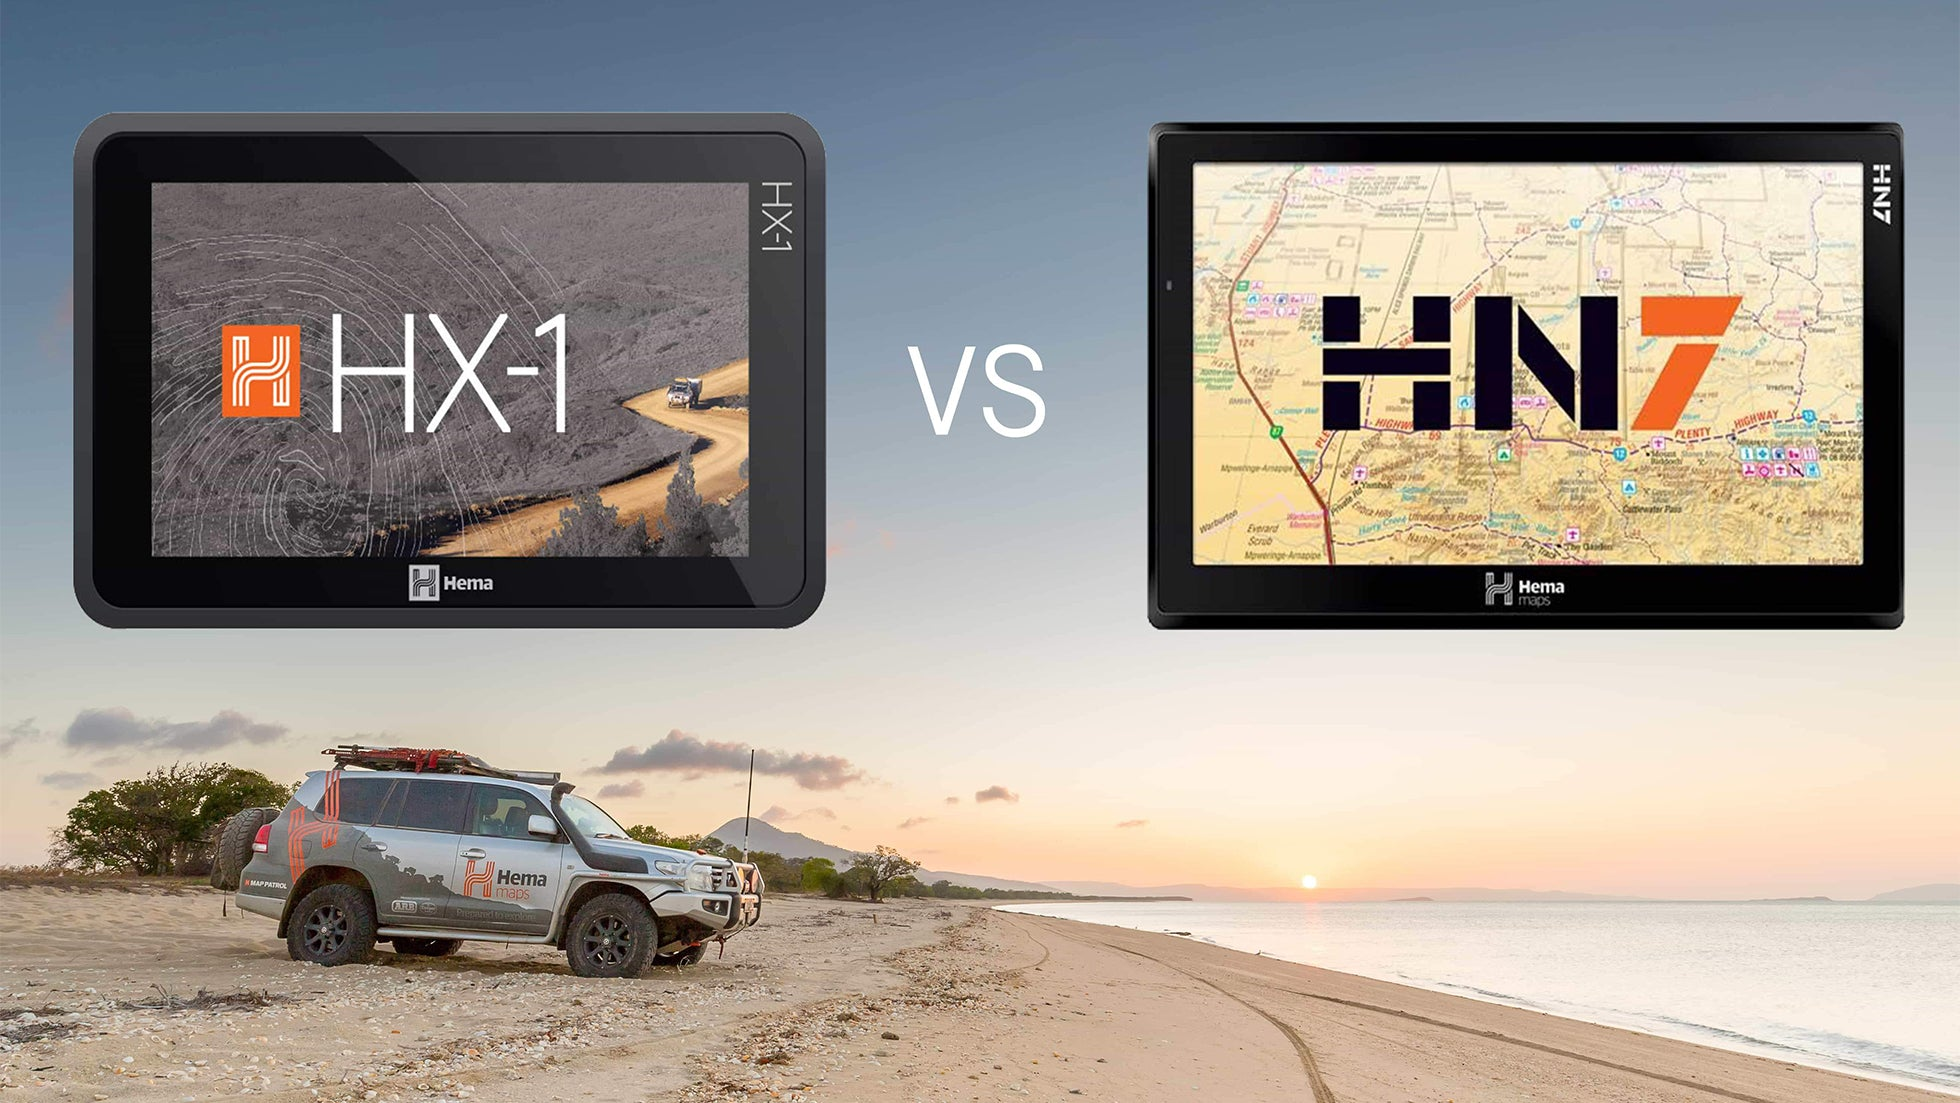 HX-1 vs HN7 Comparison Review - Mapworld